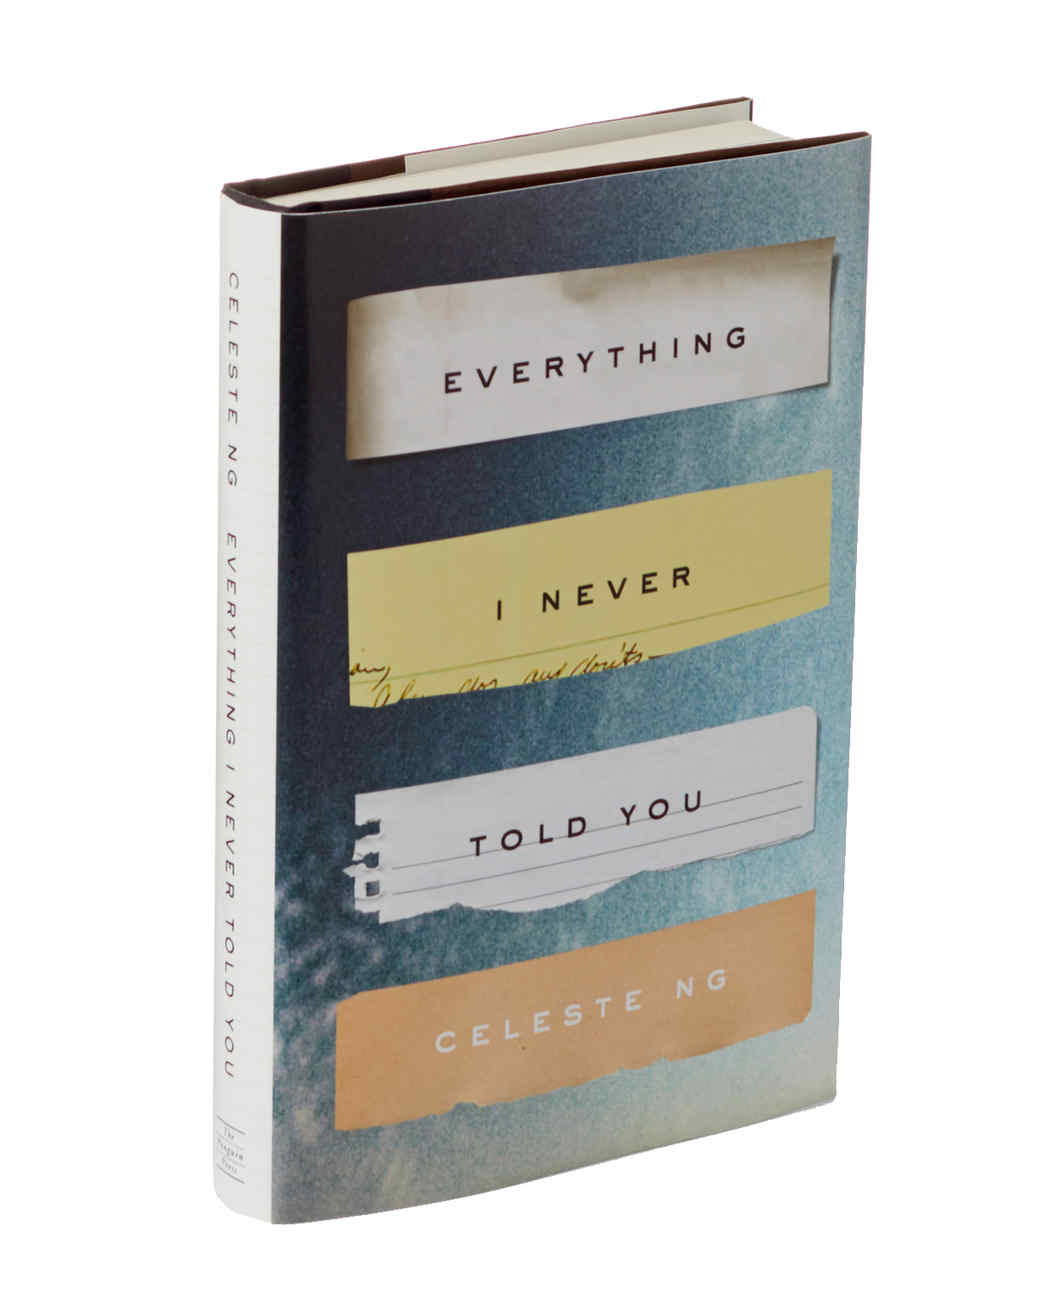 book-everything-i-never-told-you-078-d111241.jpg